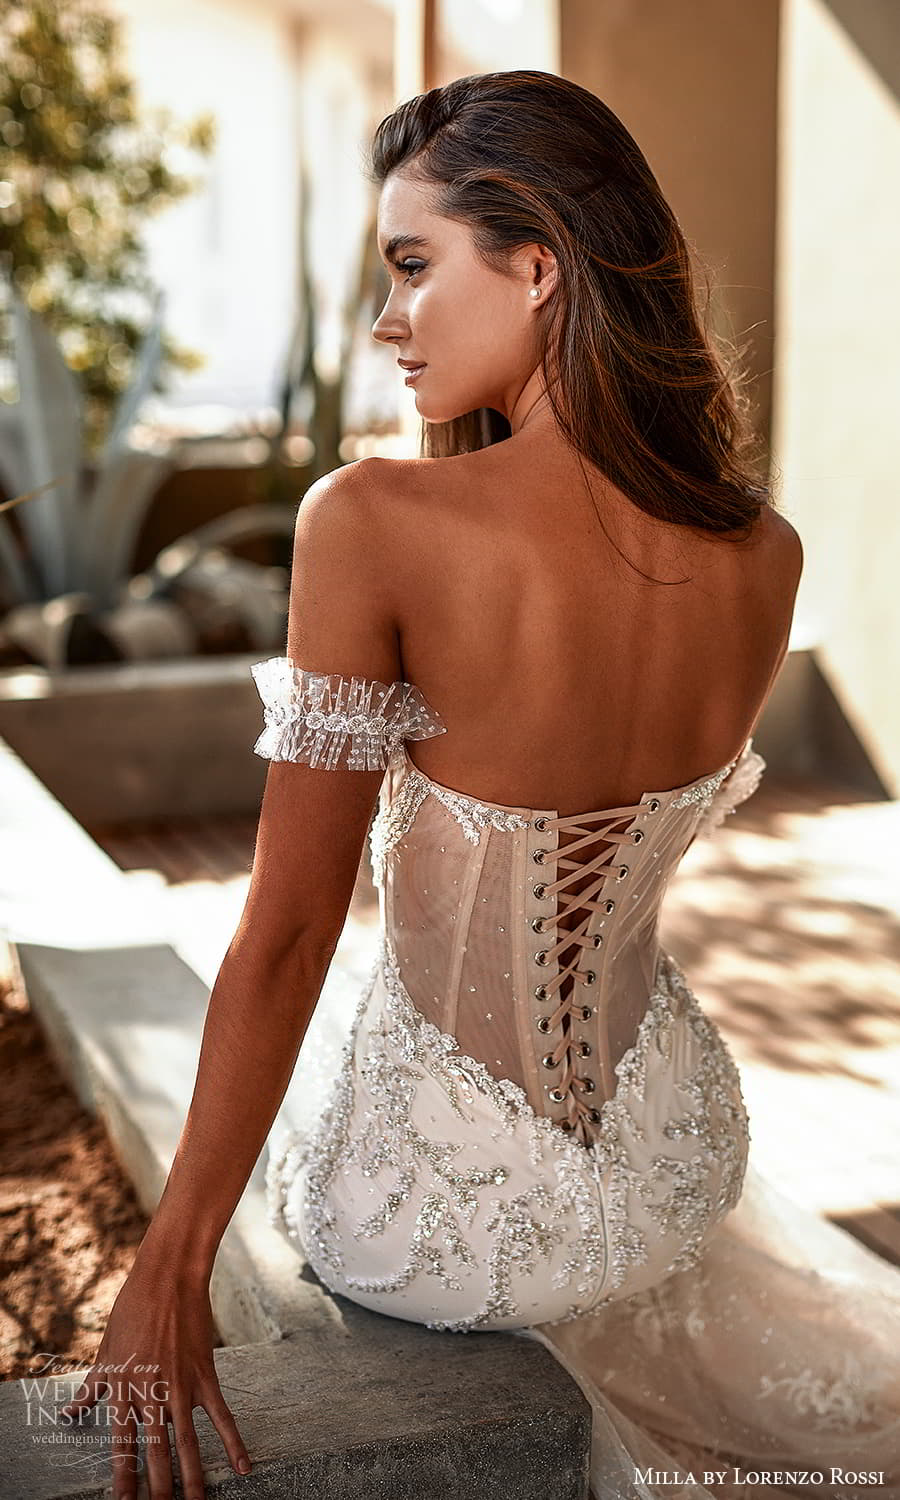 milla lorenzo rossi 2022 bridal detached straps strapless sweetheart neckline fully embellished fit flare mermaid wedding dress chapel train corset lace back (4) zbv